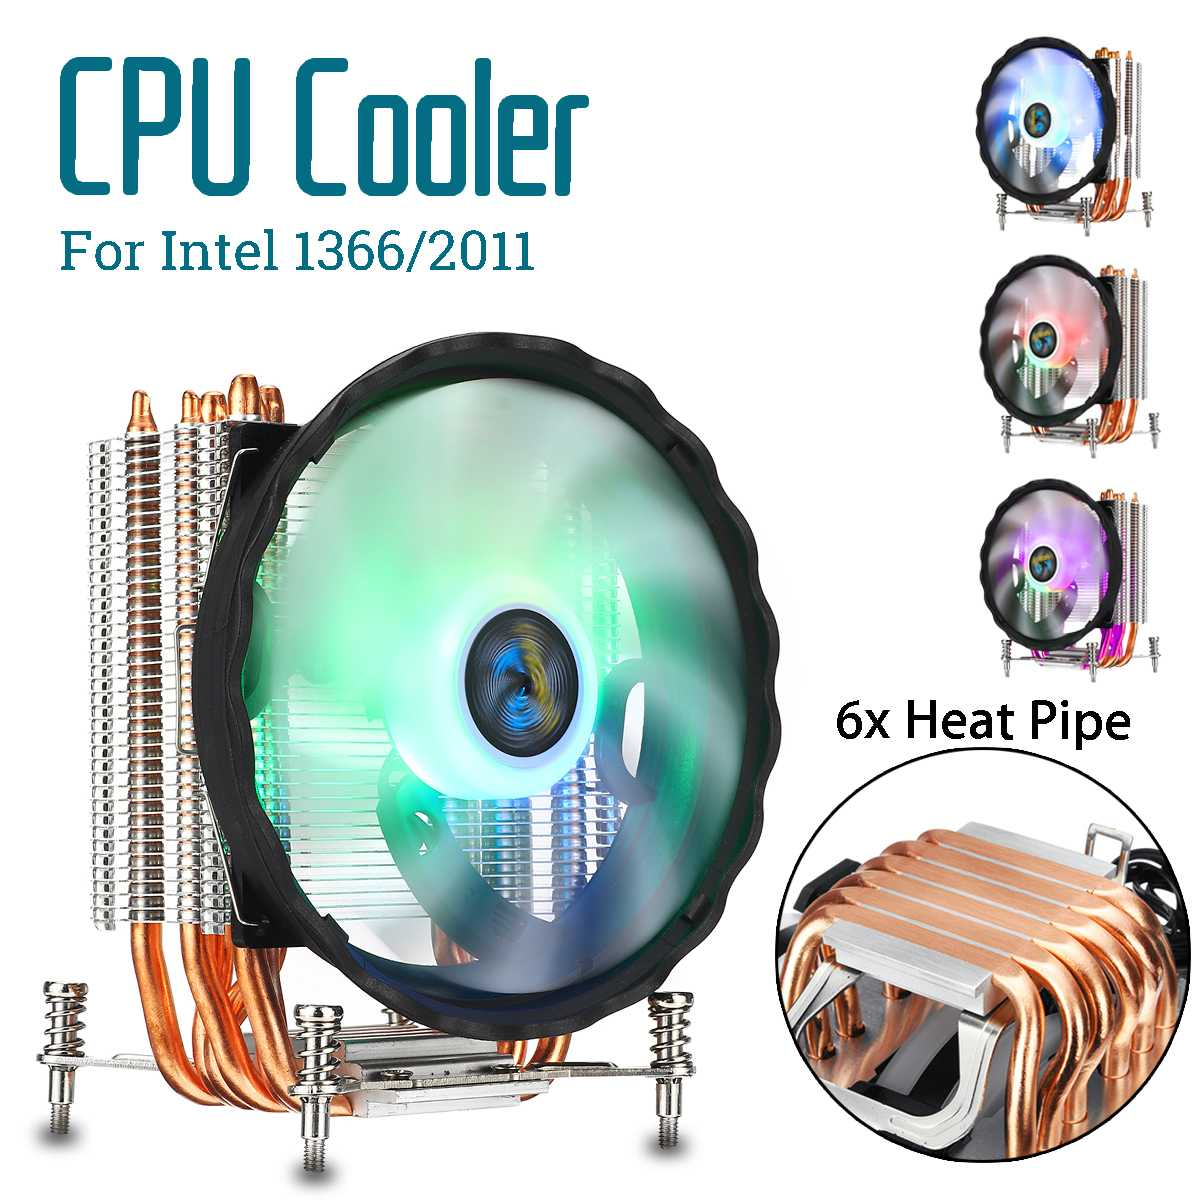 12 Light RGB Fan 6 Heat Pipes CPU Cooler Heatsink Quiet 120mm CPU Fan Cooling Radiator for Intel 2011 for Aurora Lights12 Light RGB Fan 6 Heat Pipes CPU Cooler Heatsink Quiet 120mm CPU Fan Cooling Radiator for Intel 2011 for Aurora Lights